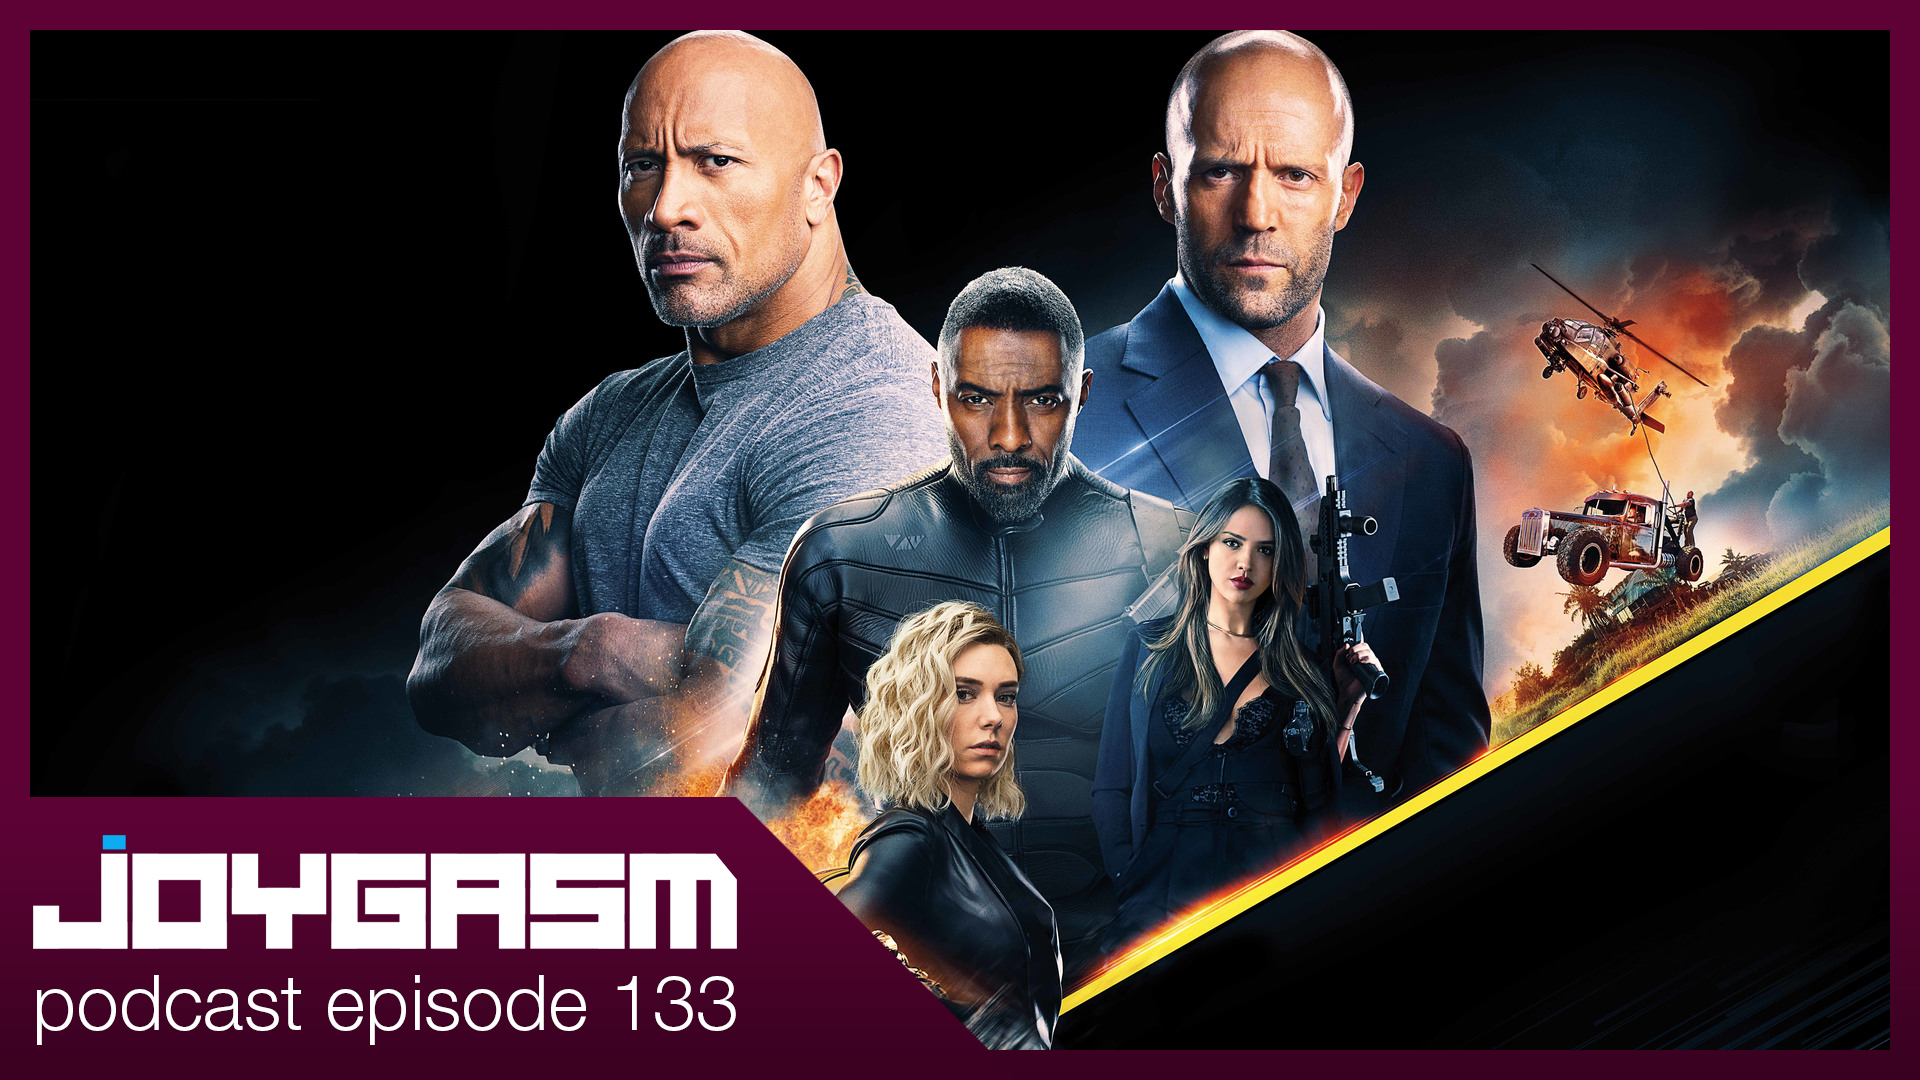 Ep. 133: Fast & Furious Hobbs and Shaw Movie Review